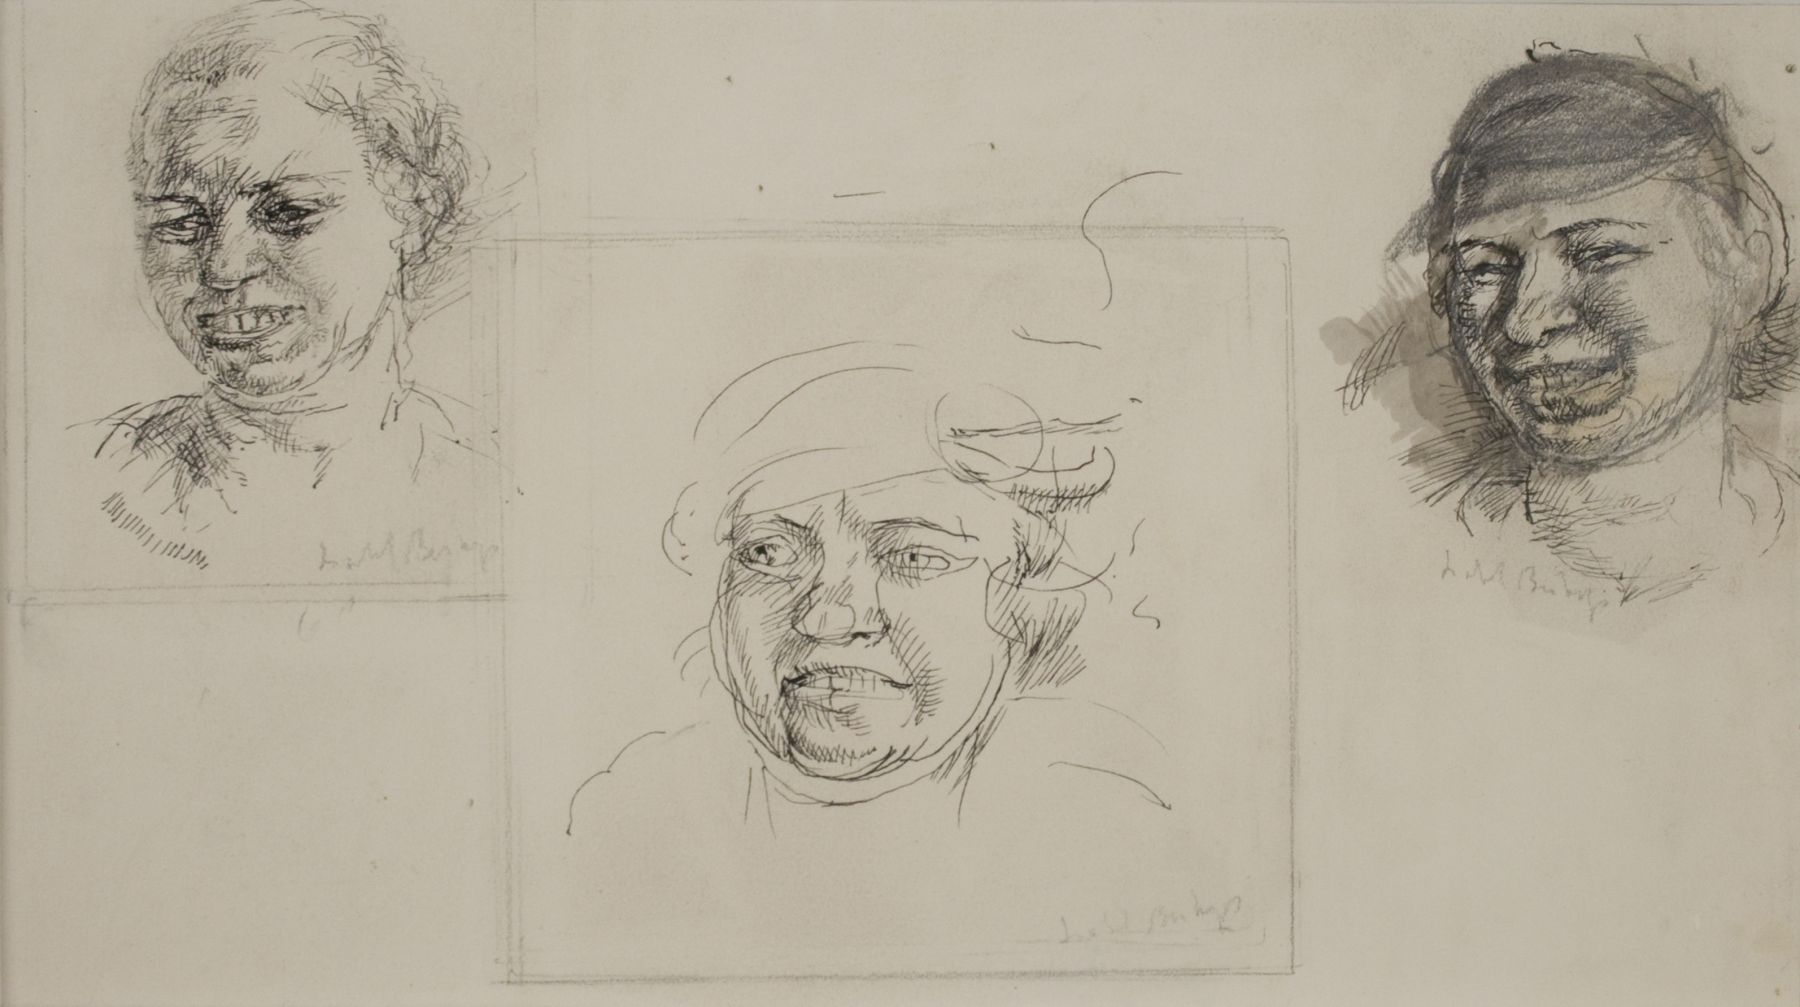 Isabel Bishop, Laughing Heads, Study Drawings, ink on paper, 7 x 9 1/4 inches